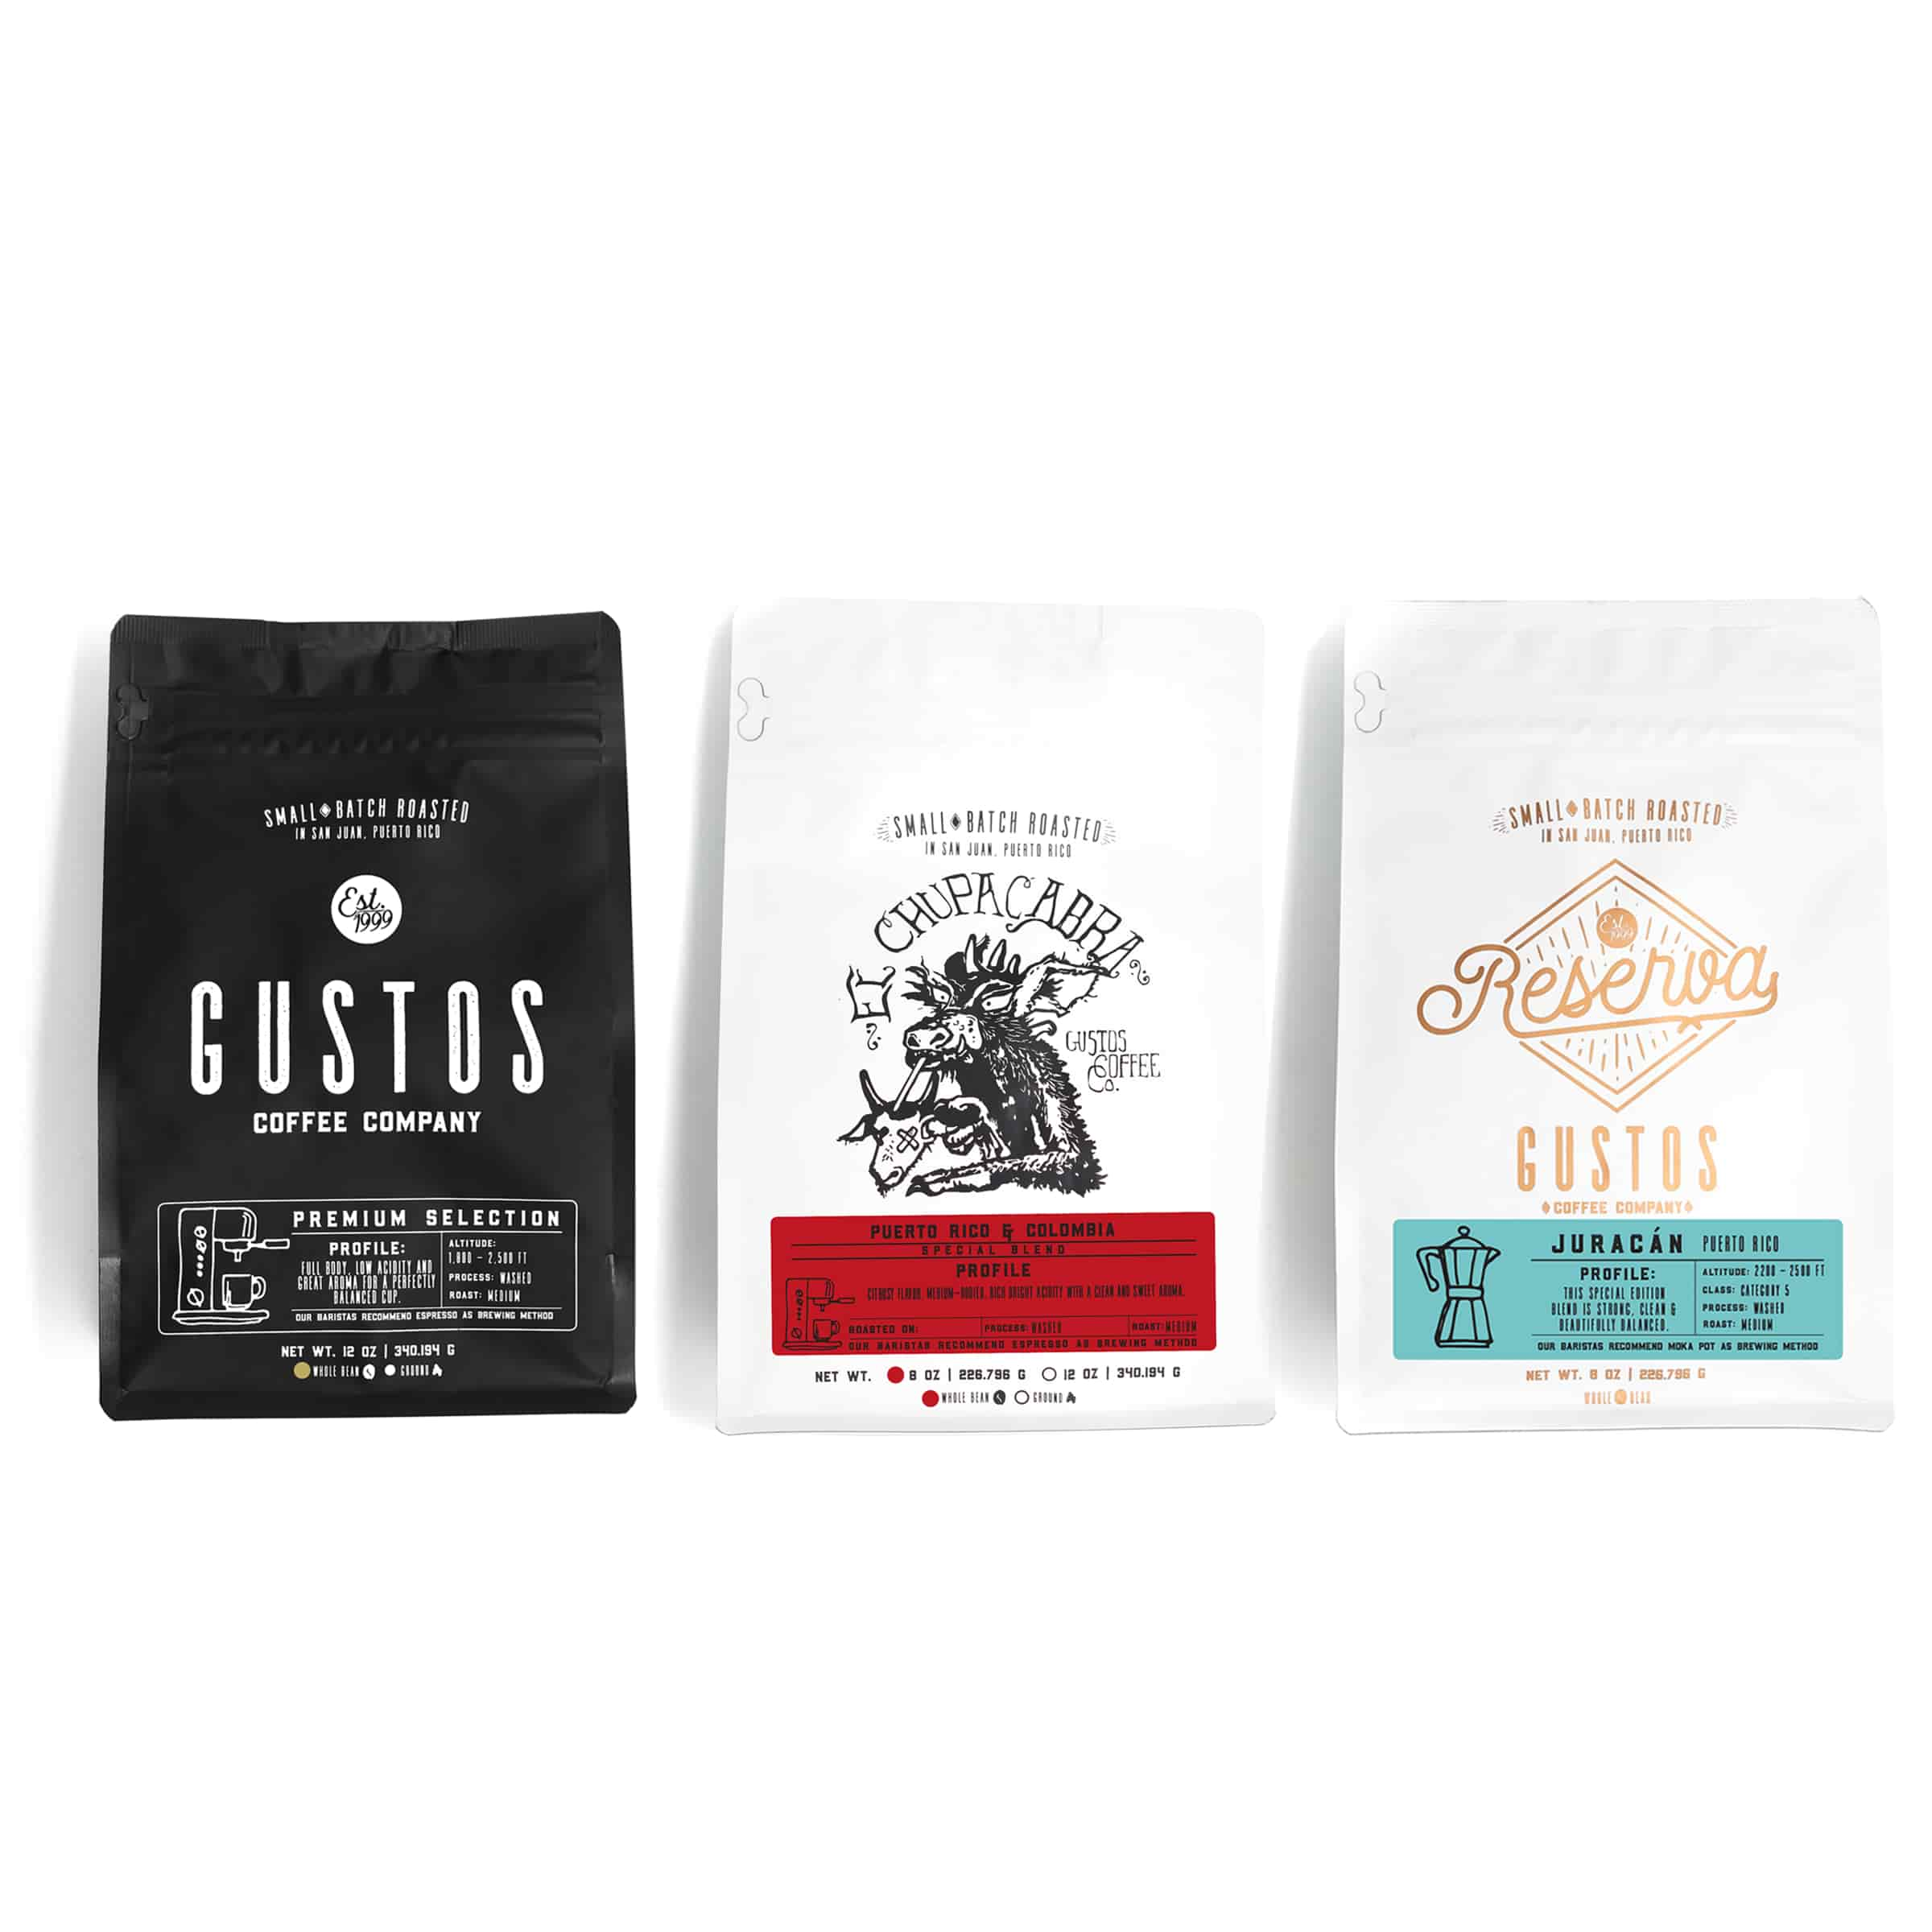 three mixed size bags side by side of Special Coffee From Gustos Coffee Co Café from Puerto Rico. Regions shown: Premium Selection, Yauco, El Chupacabra and Reserva Juracán blend